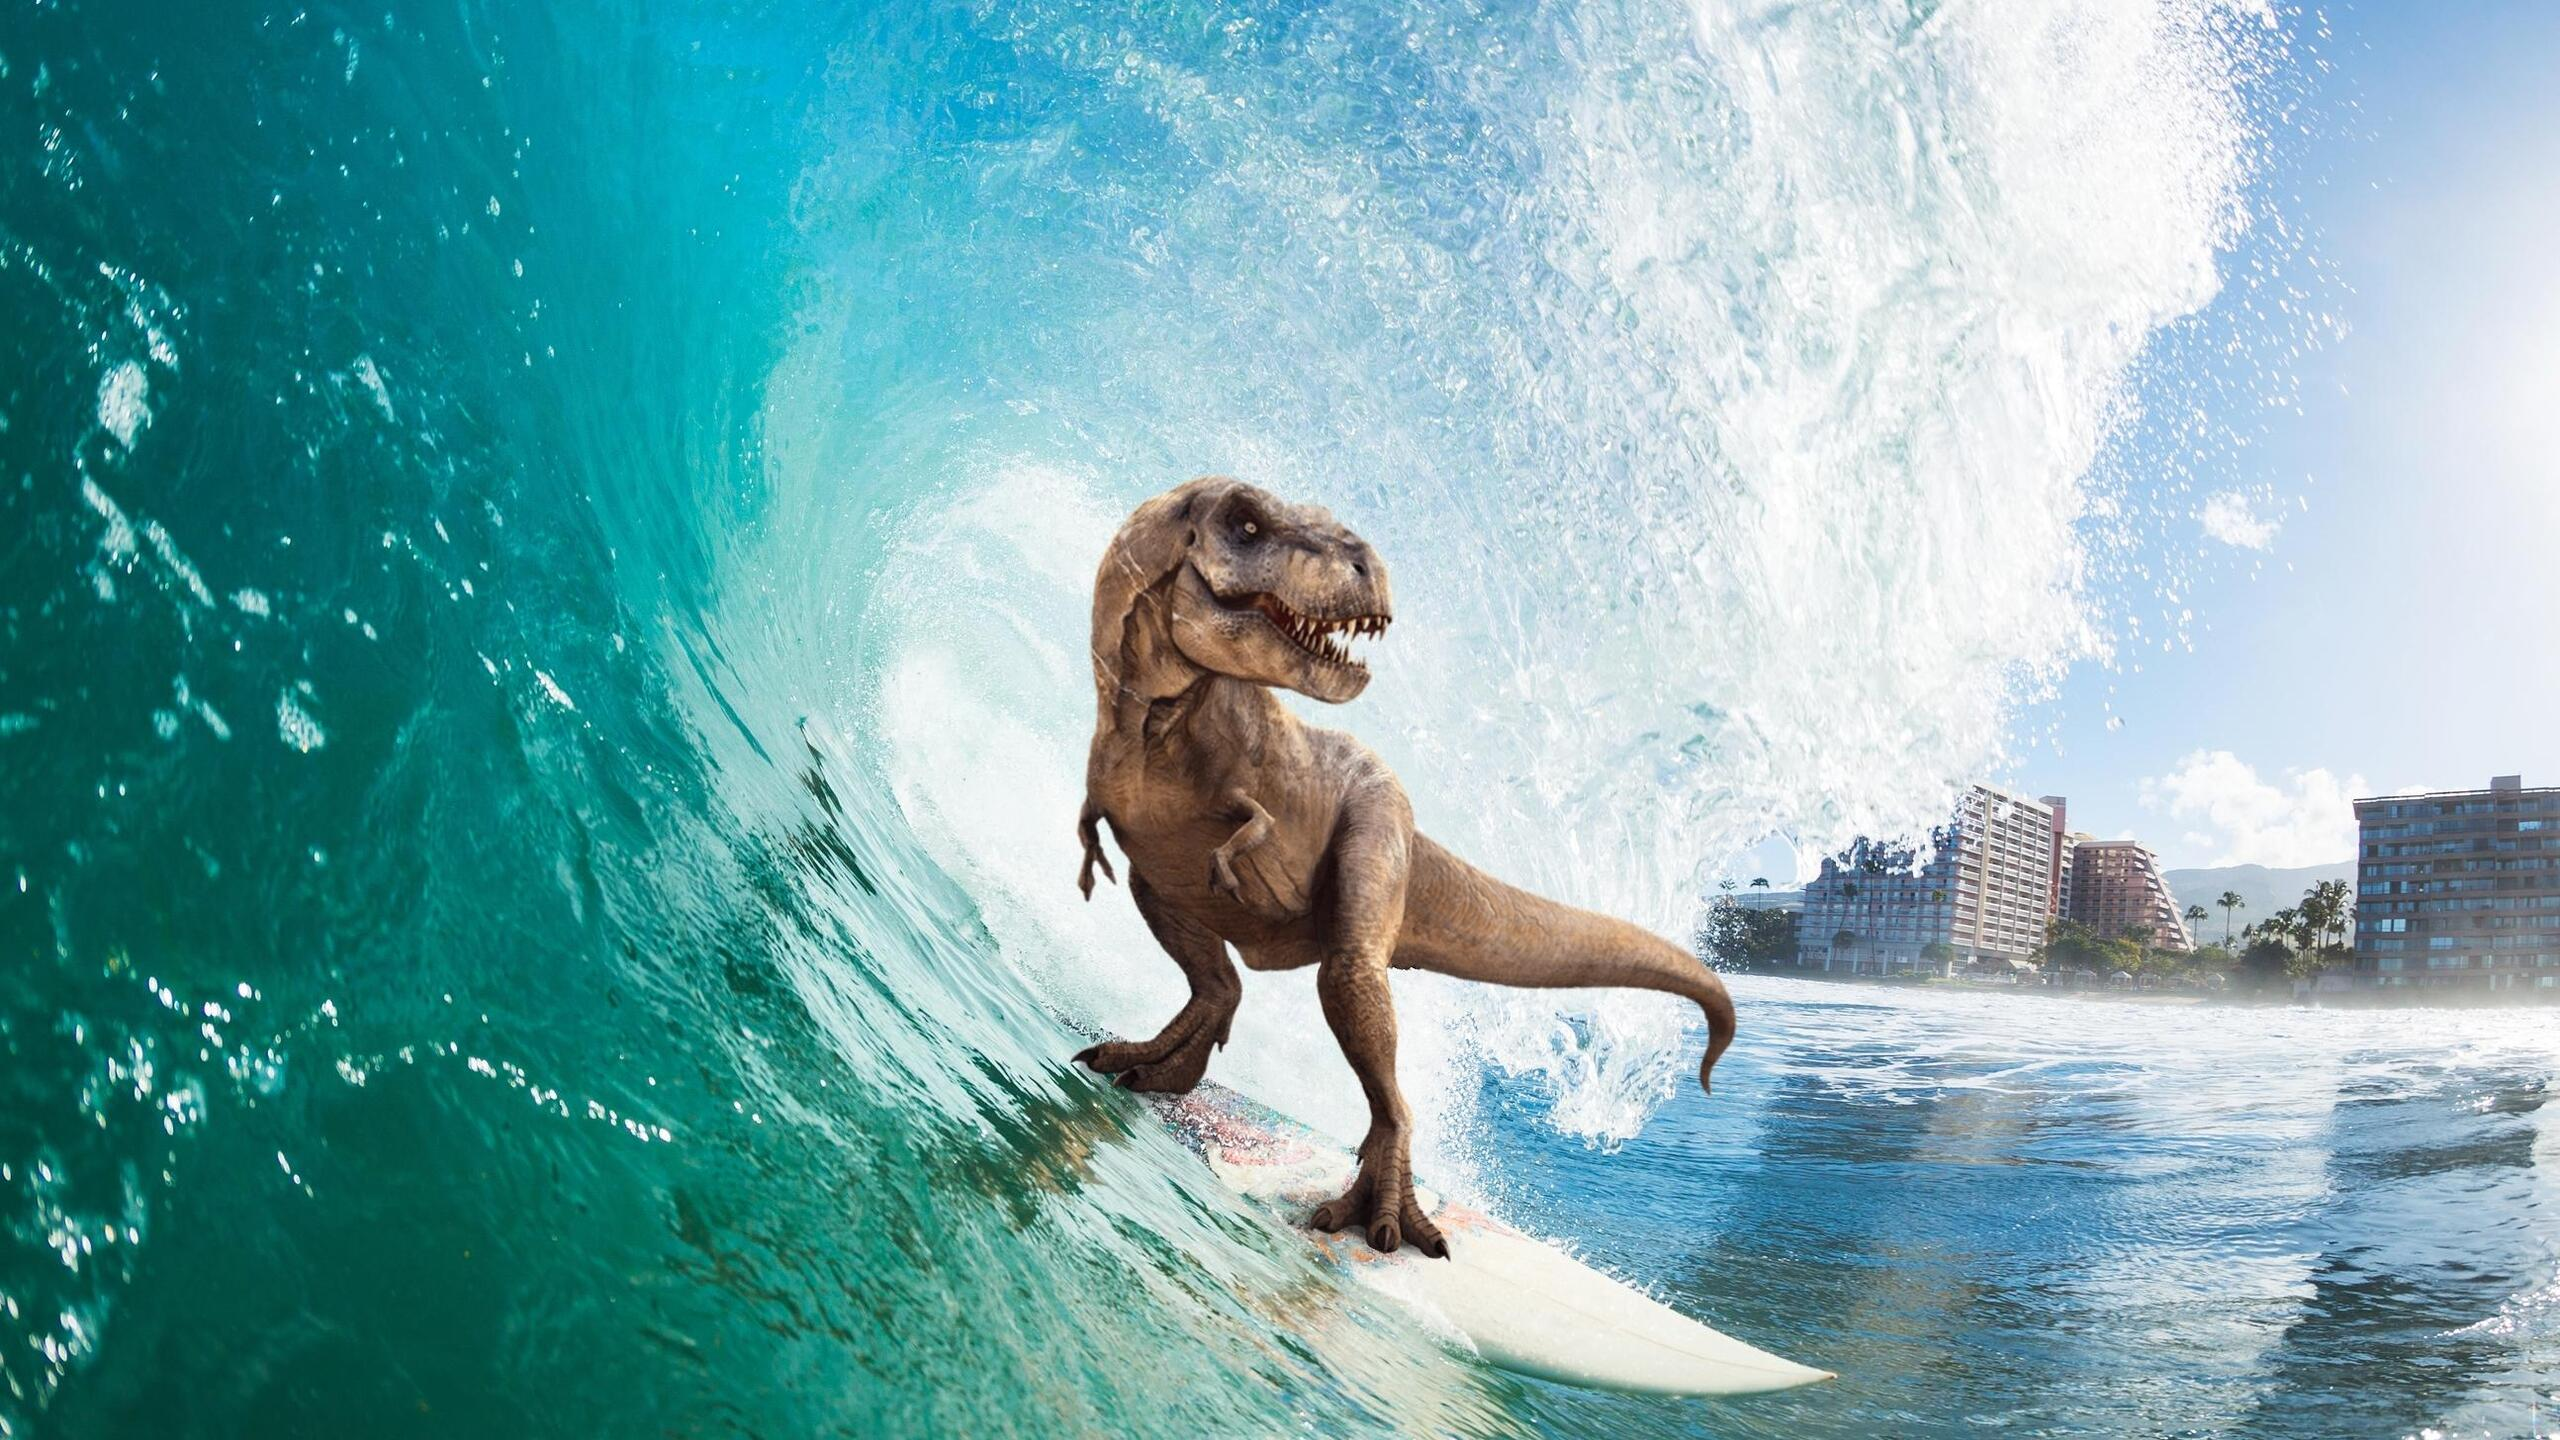 2560x1440 surfing t rex 1440p resolution hd 4k wallpapers, images